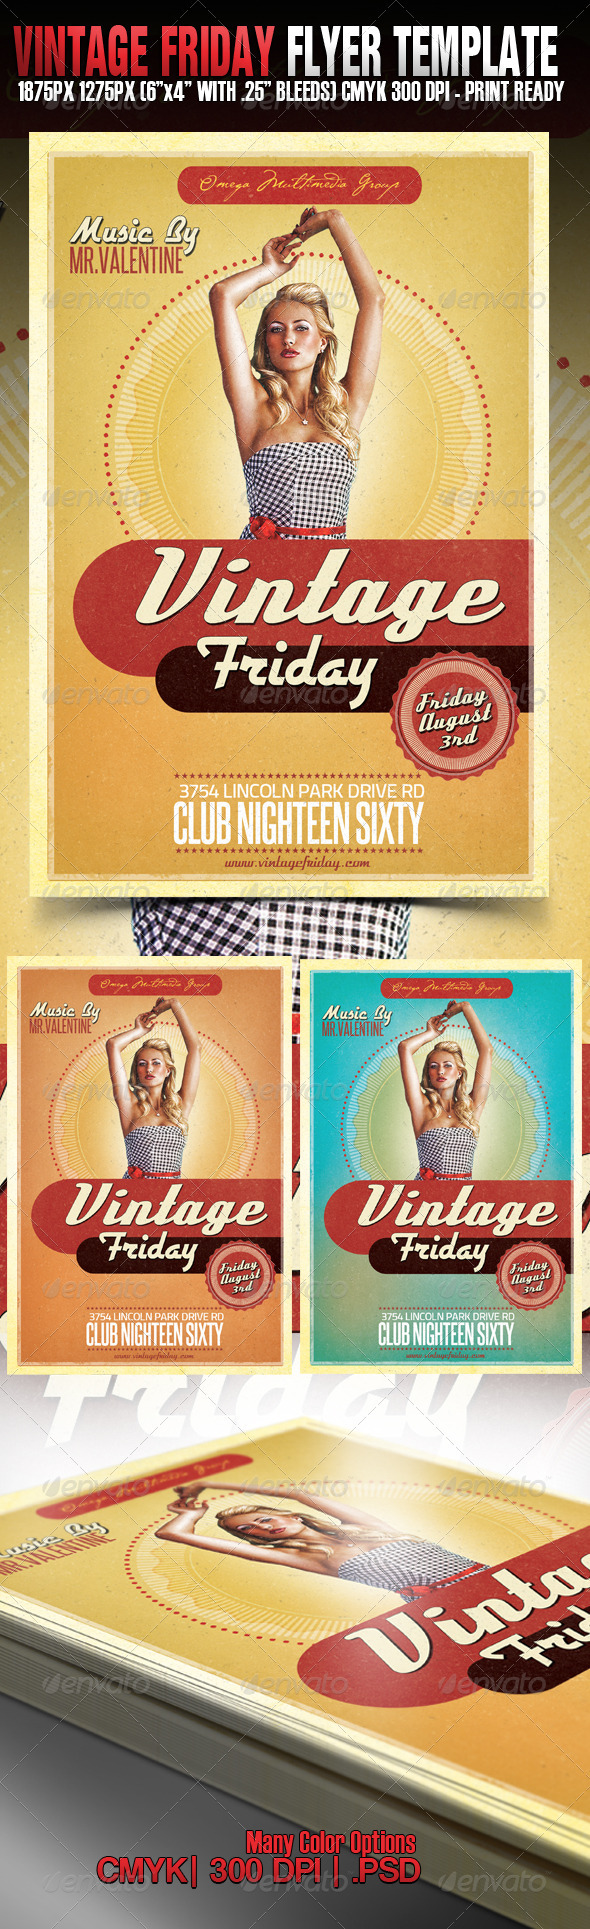 Vintage Friday - Clubs & Parties Events